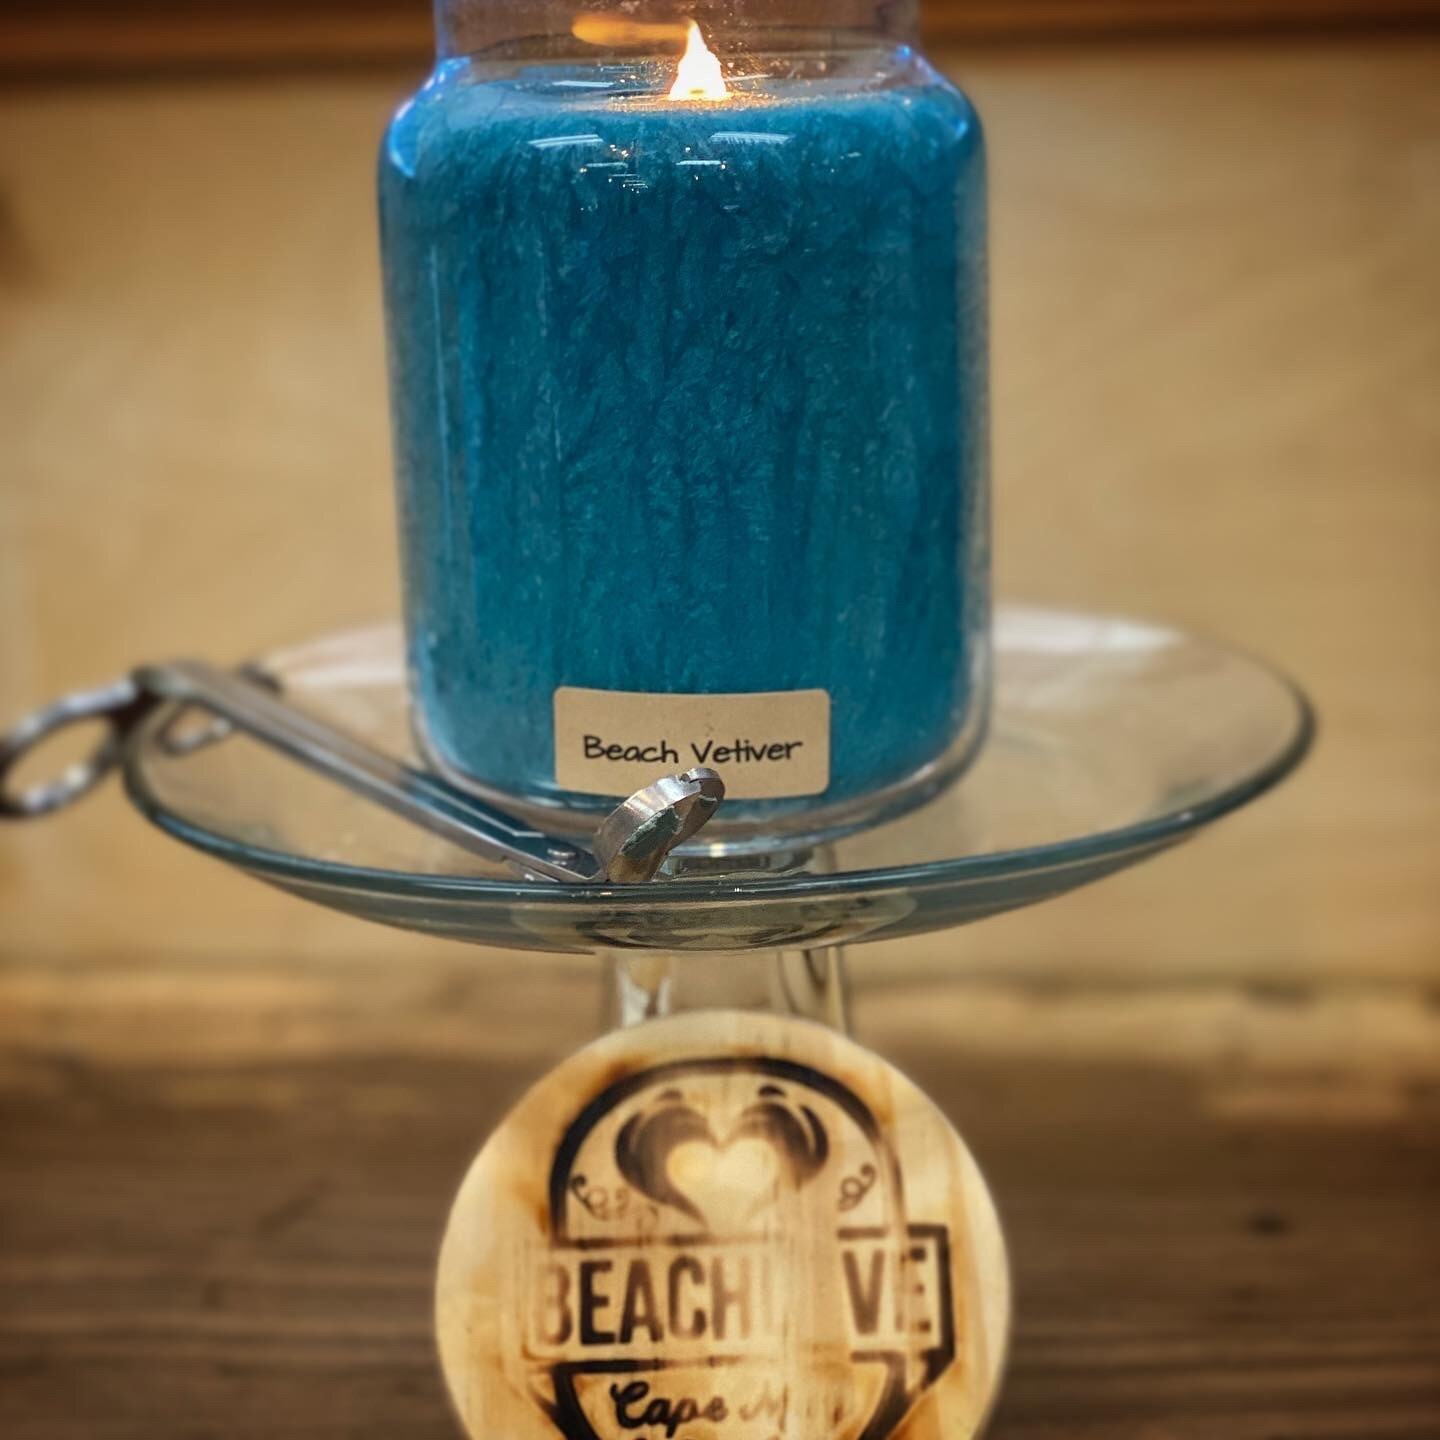 Beach Vetiver Apothecary Jar Candle